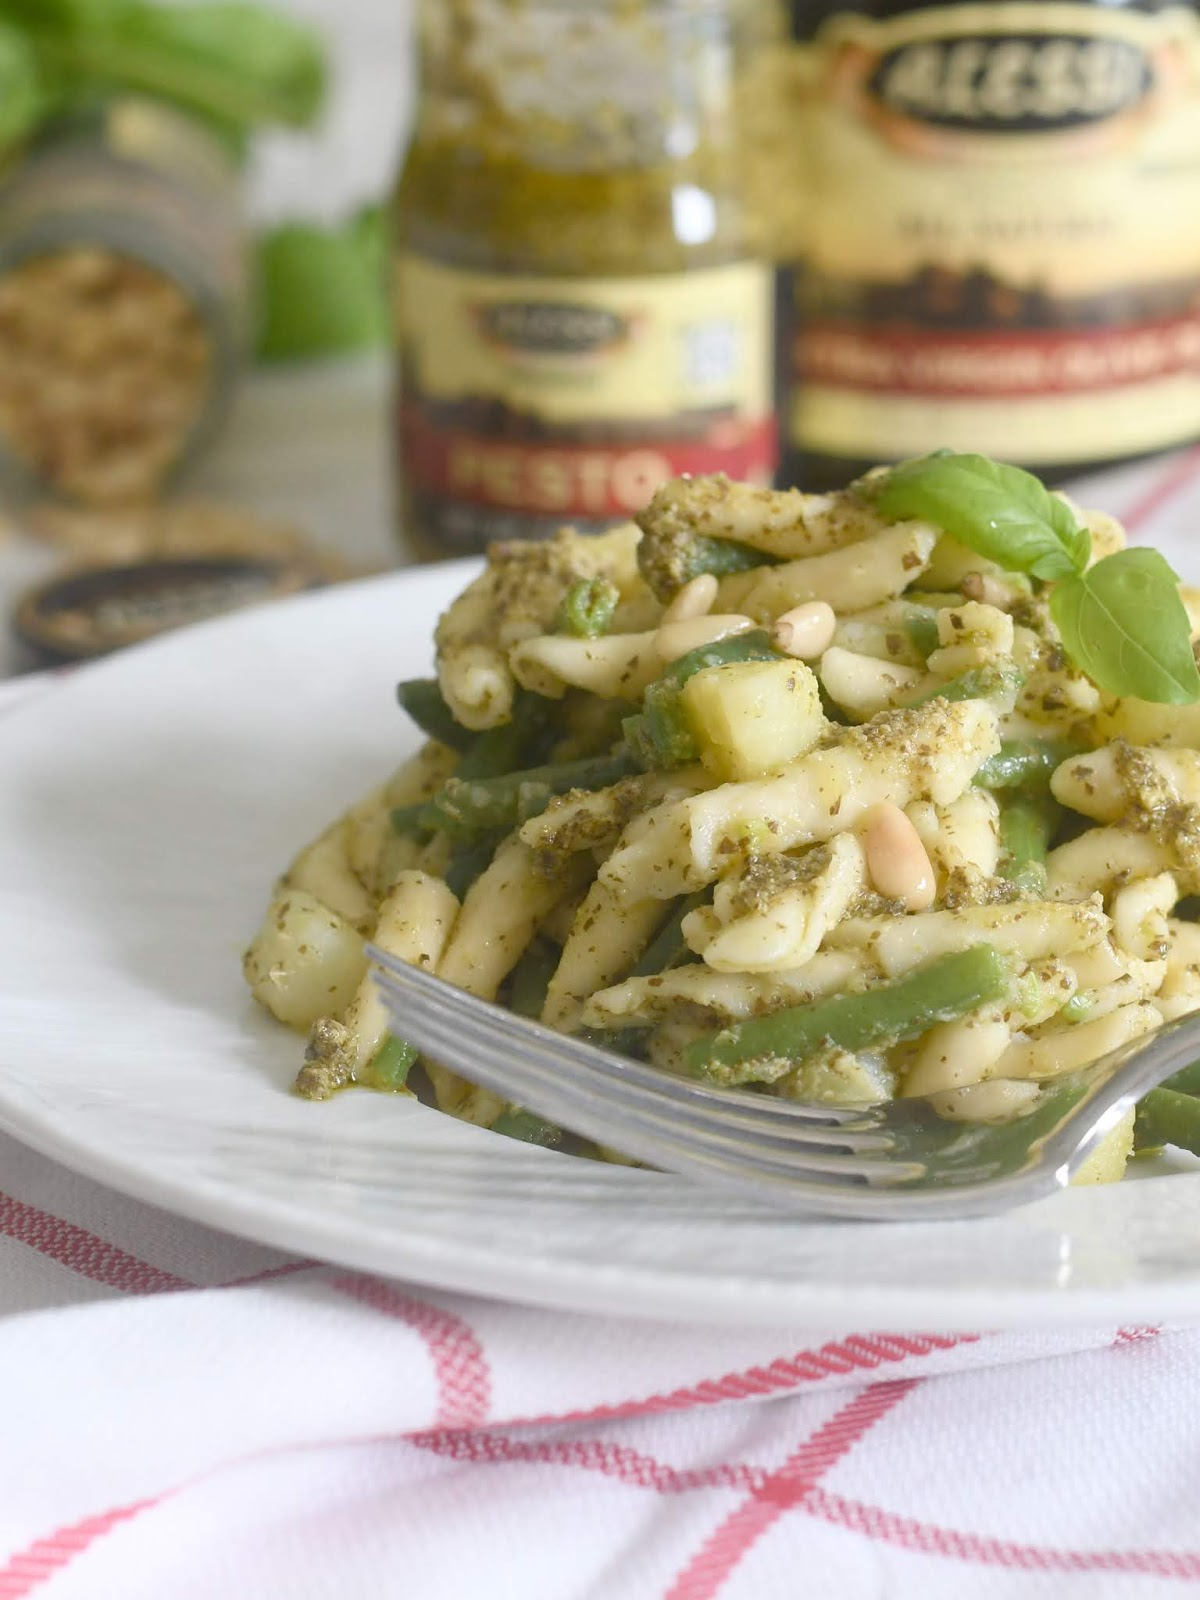 Traditional Ligurian Pasta with Pesto, Potatoes and Green Beans